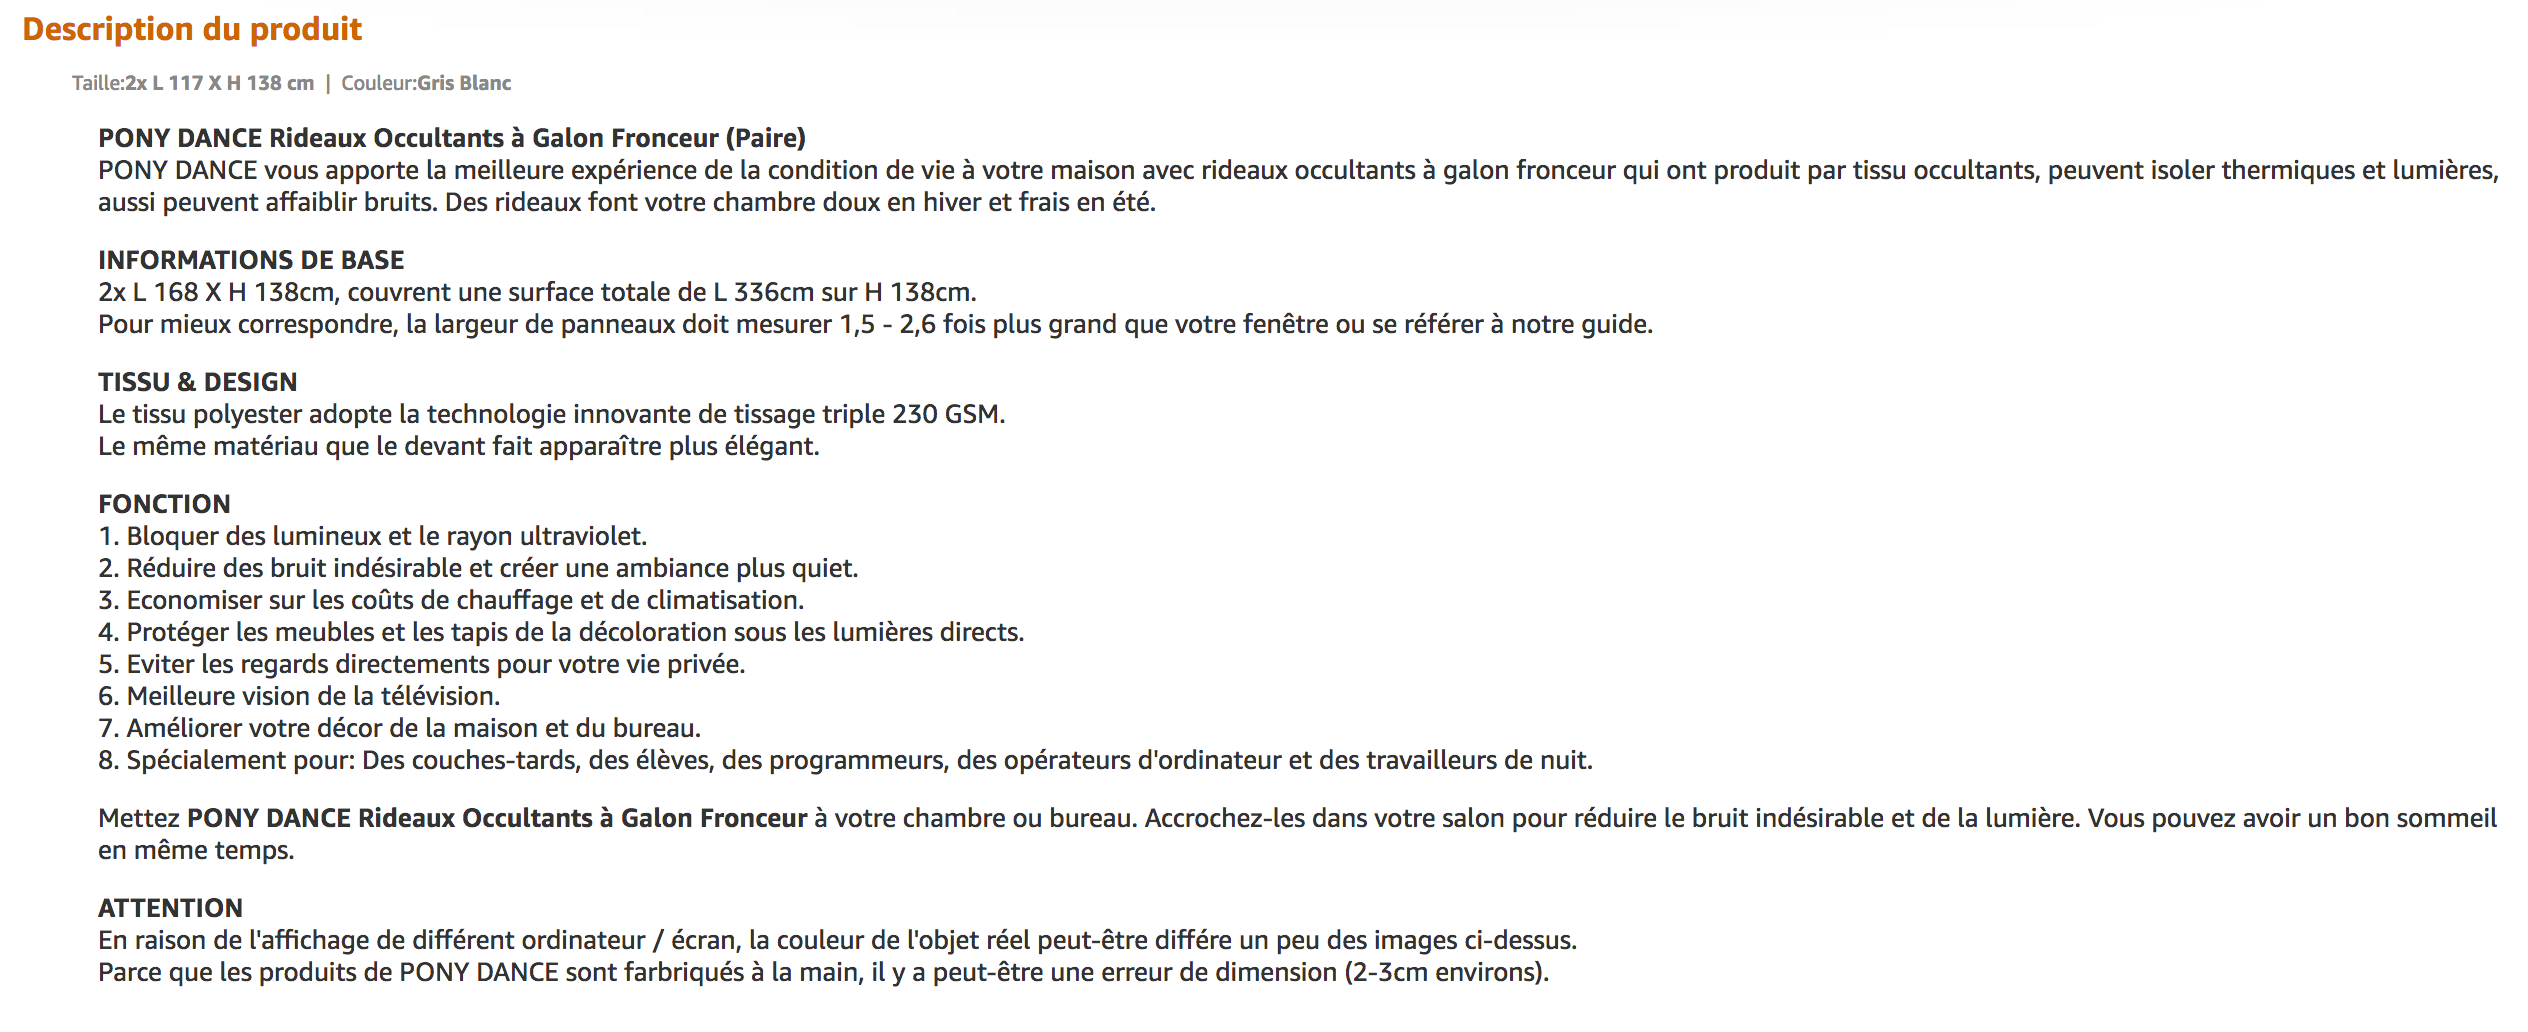 Page Amazon avec la description longue